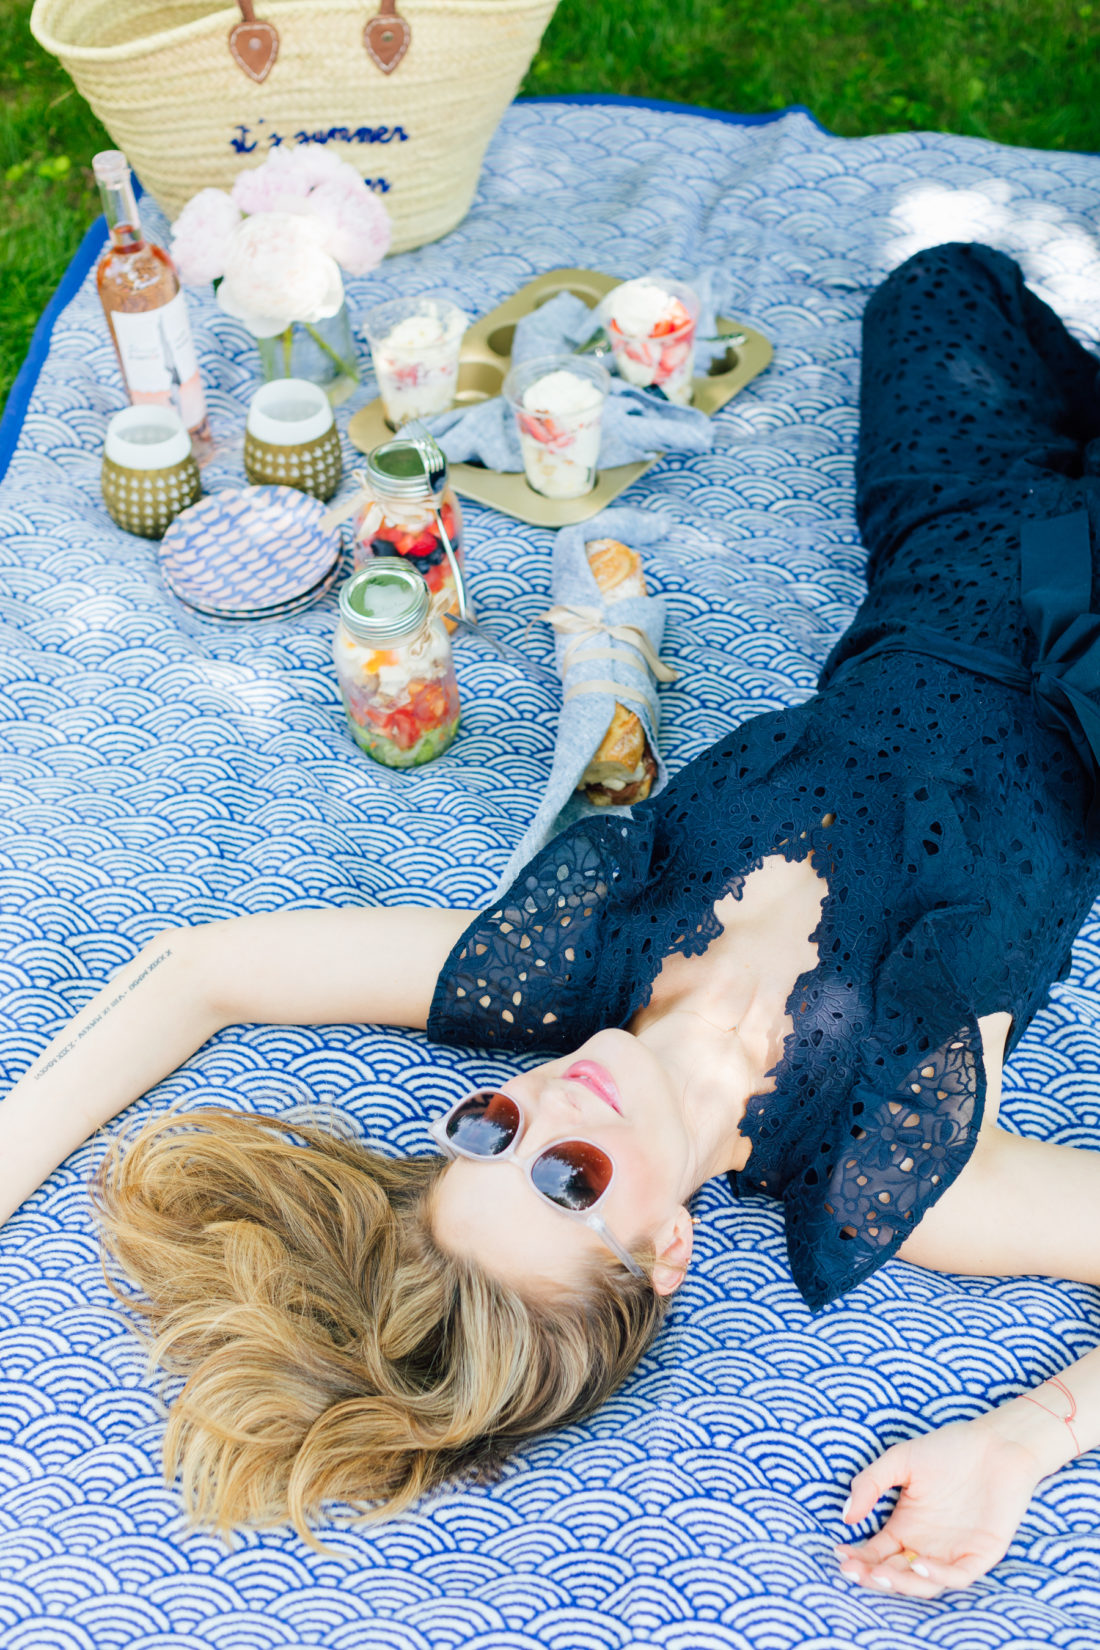 Eva Amurri Martino lies down on a picnic blanket